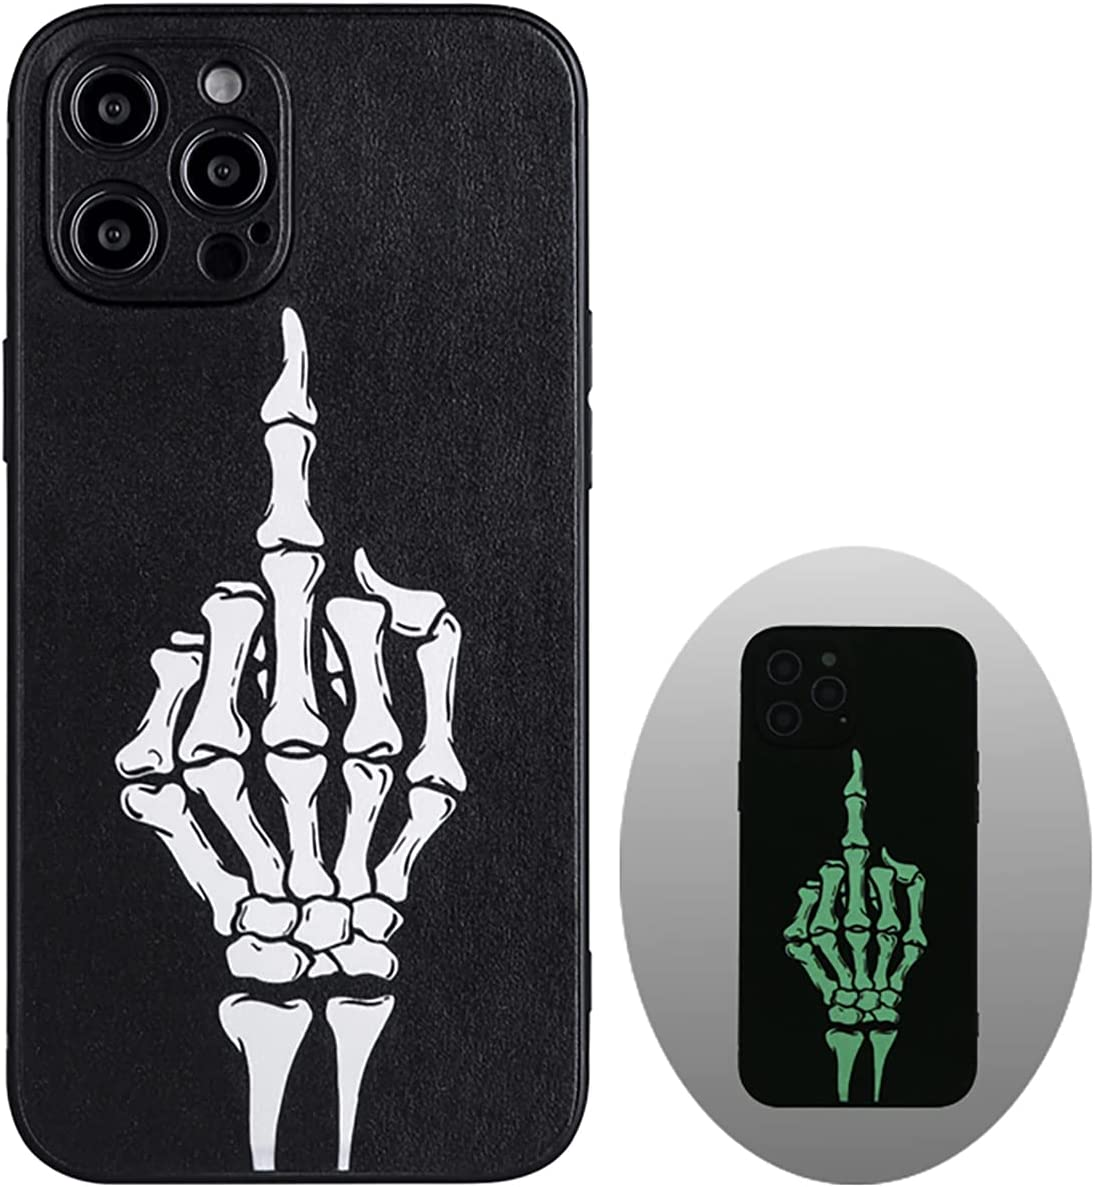 X-spirit Cool Leather Case for iPhone 12 Pro Max, Skull Skeleton Design, Middle Finger Glow in The Dark (iPh 12 Pro Max-Middle Finger)